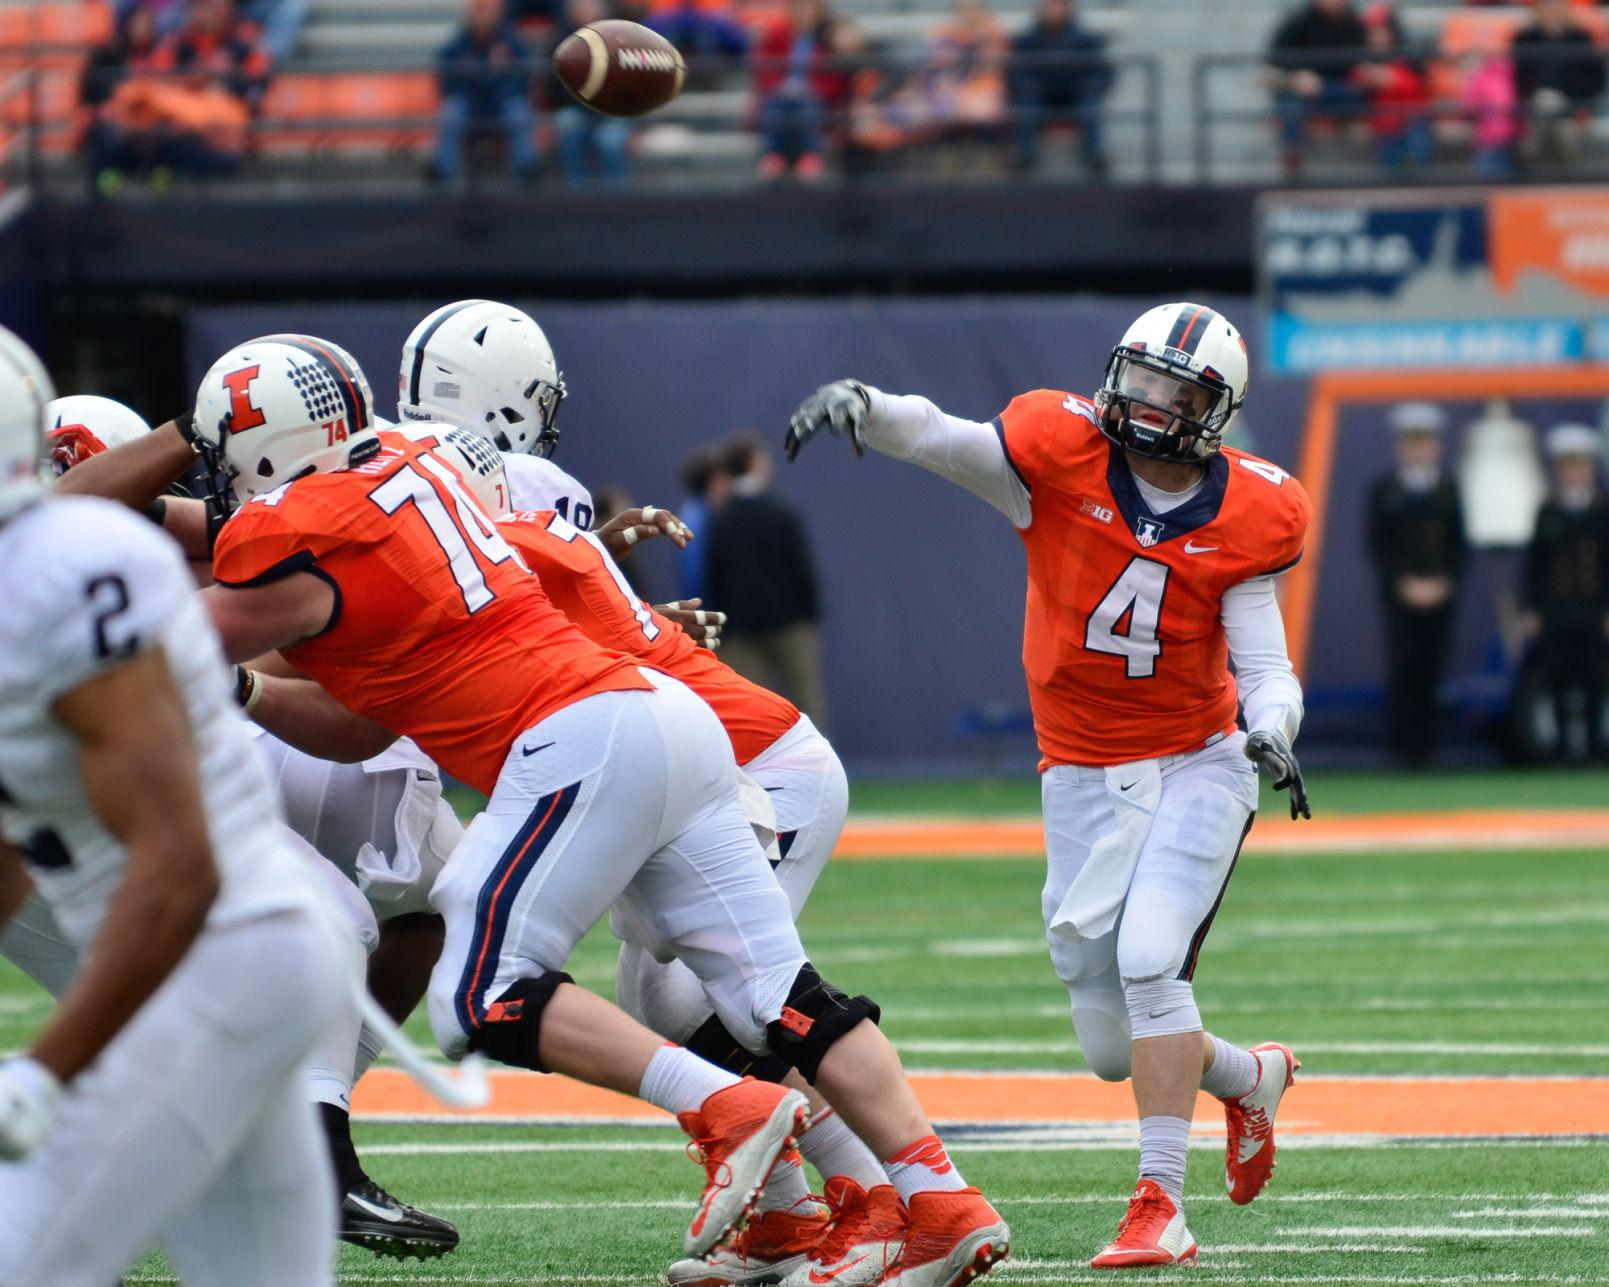 Illinois' Reilly O'Toole (4) passes the balll during the game against Penn State at Memorial Stadium on Saturday, Nov. 22, 2014. The Illini won 16-14.